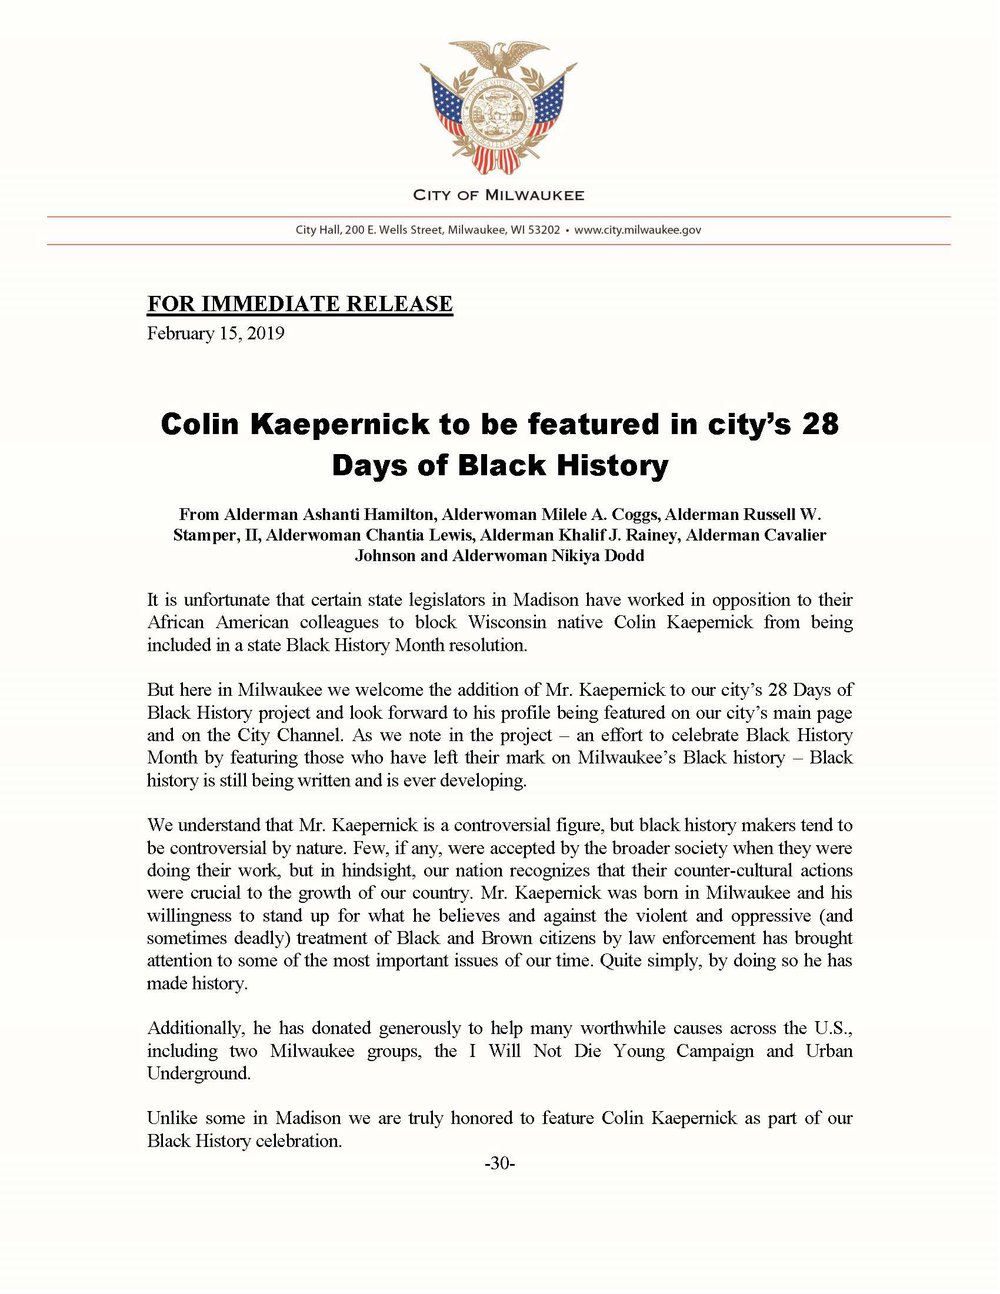 Joint_statement_-_Colin_Kaepernick_to_be_featured_in_city_Black_History_project2.jpg